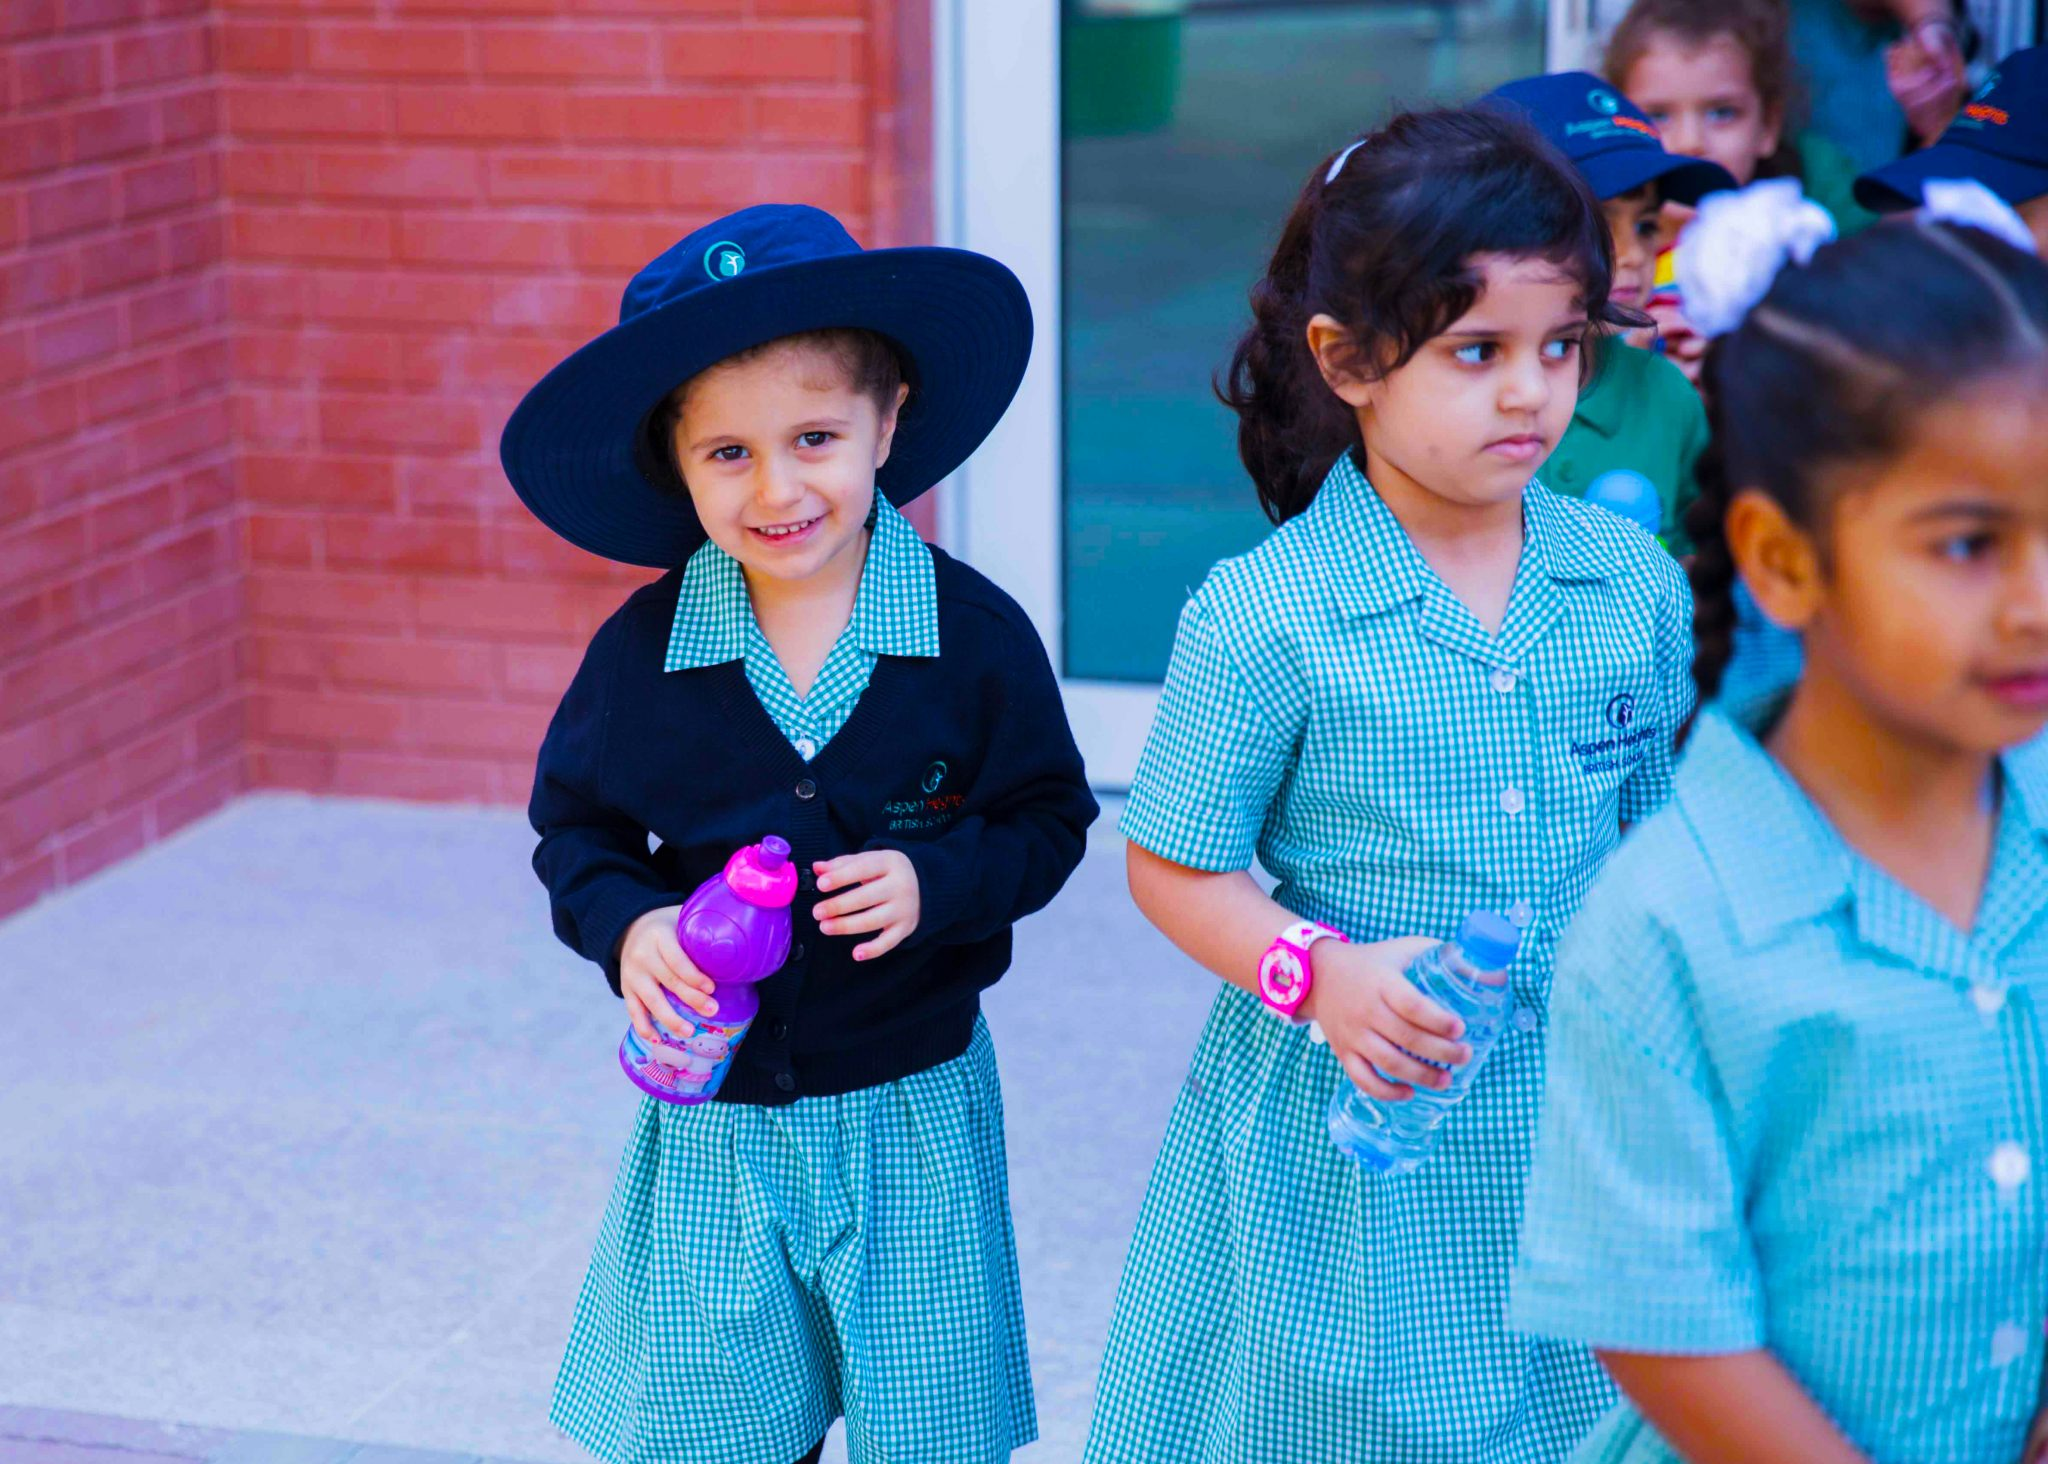 Photograph of children at the end of the school day leaving Aspen Heights British School in Abu Dhabi